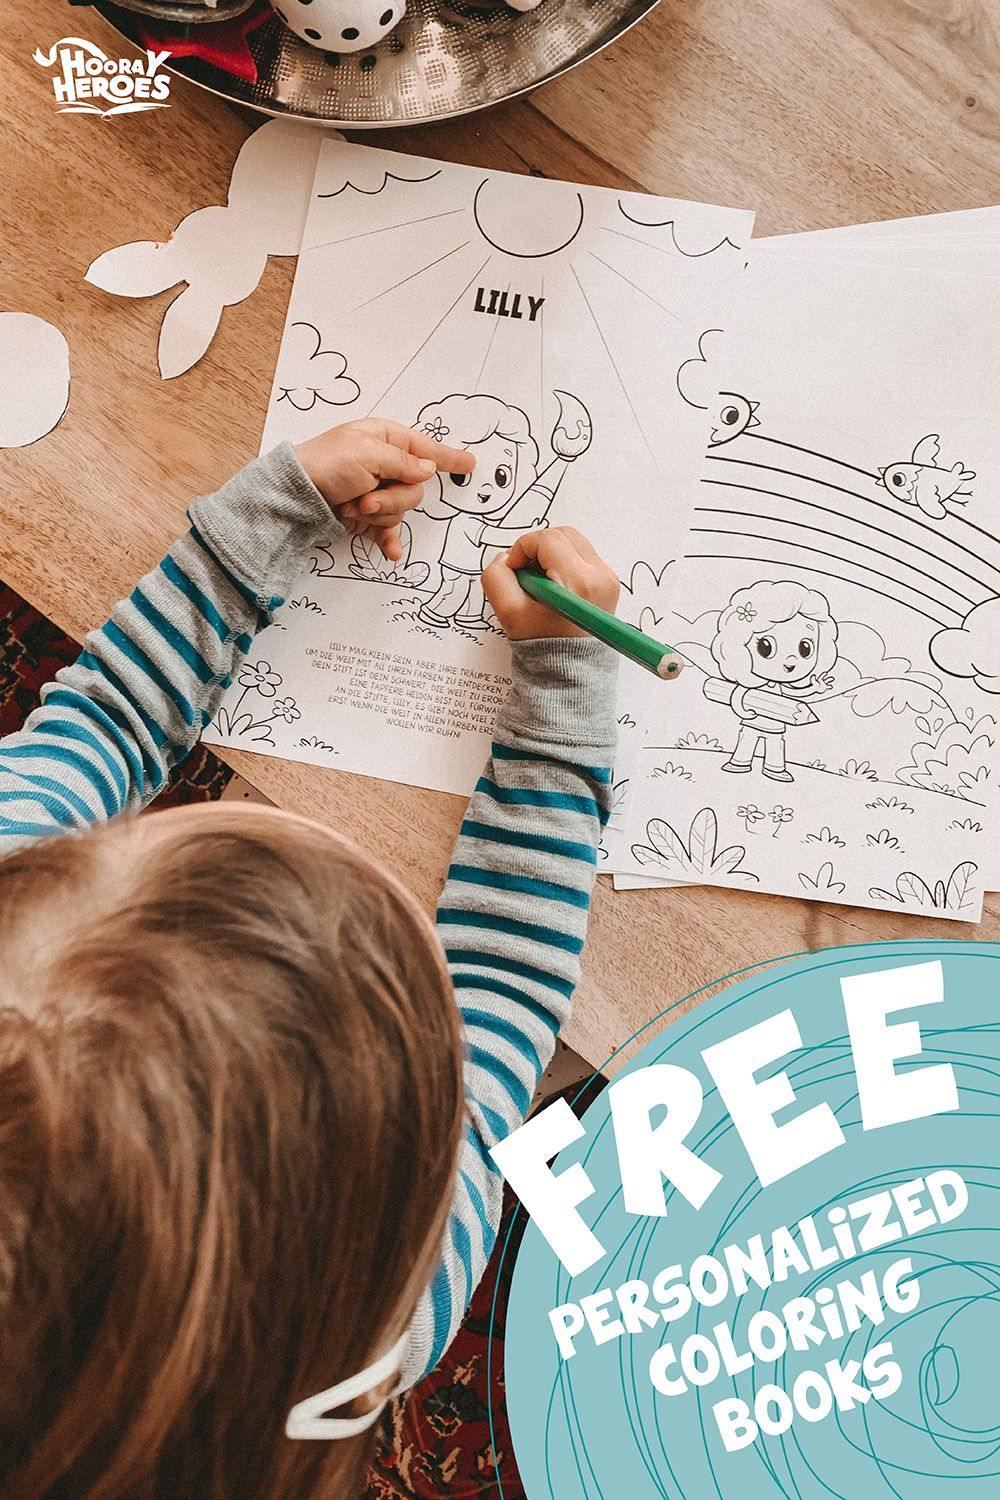 Free Personalized Printables From Hooray Heroes Hooray Heroes Coloring Books Personalized Coloring Book Hooray Heroes